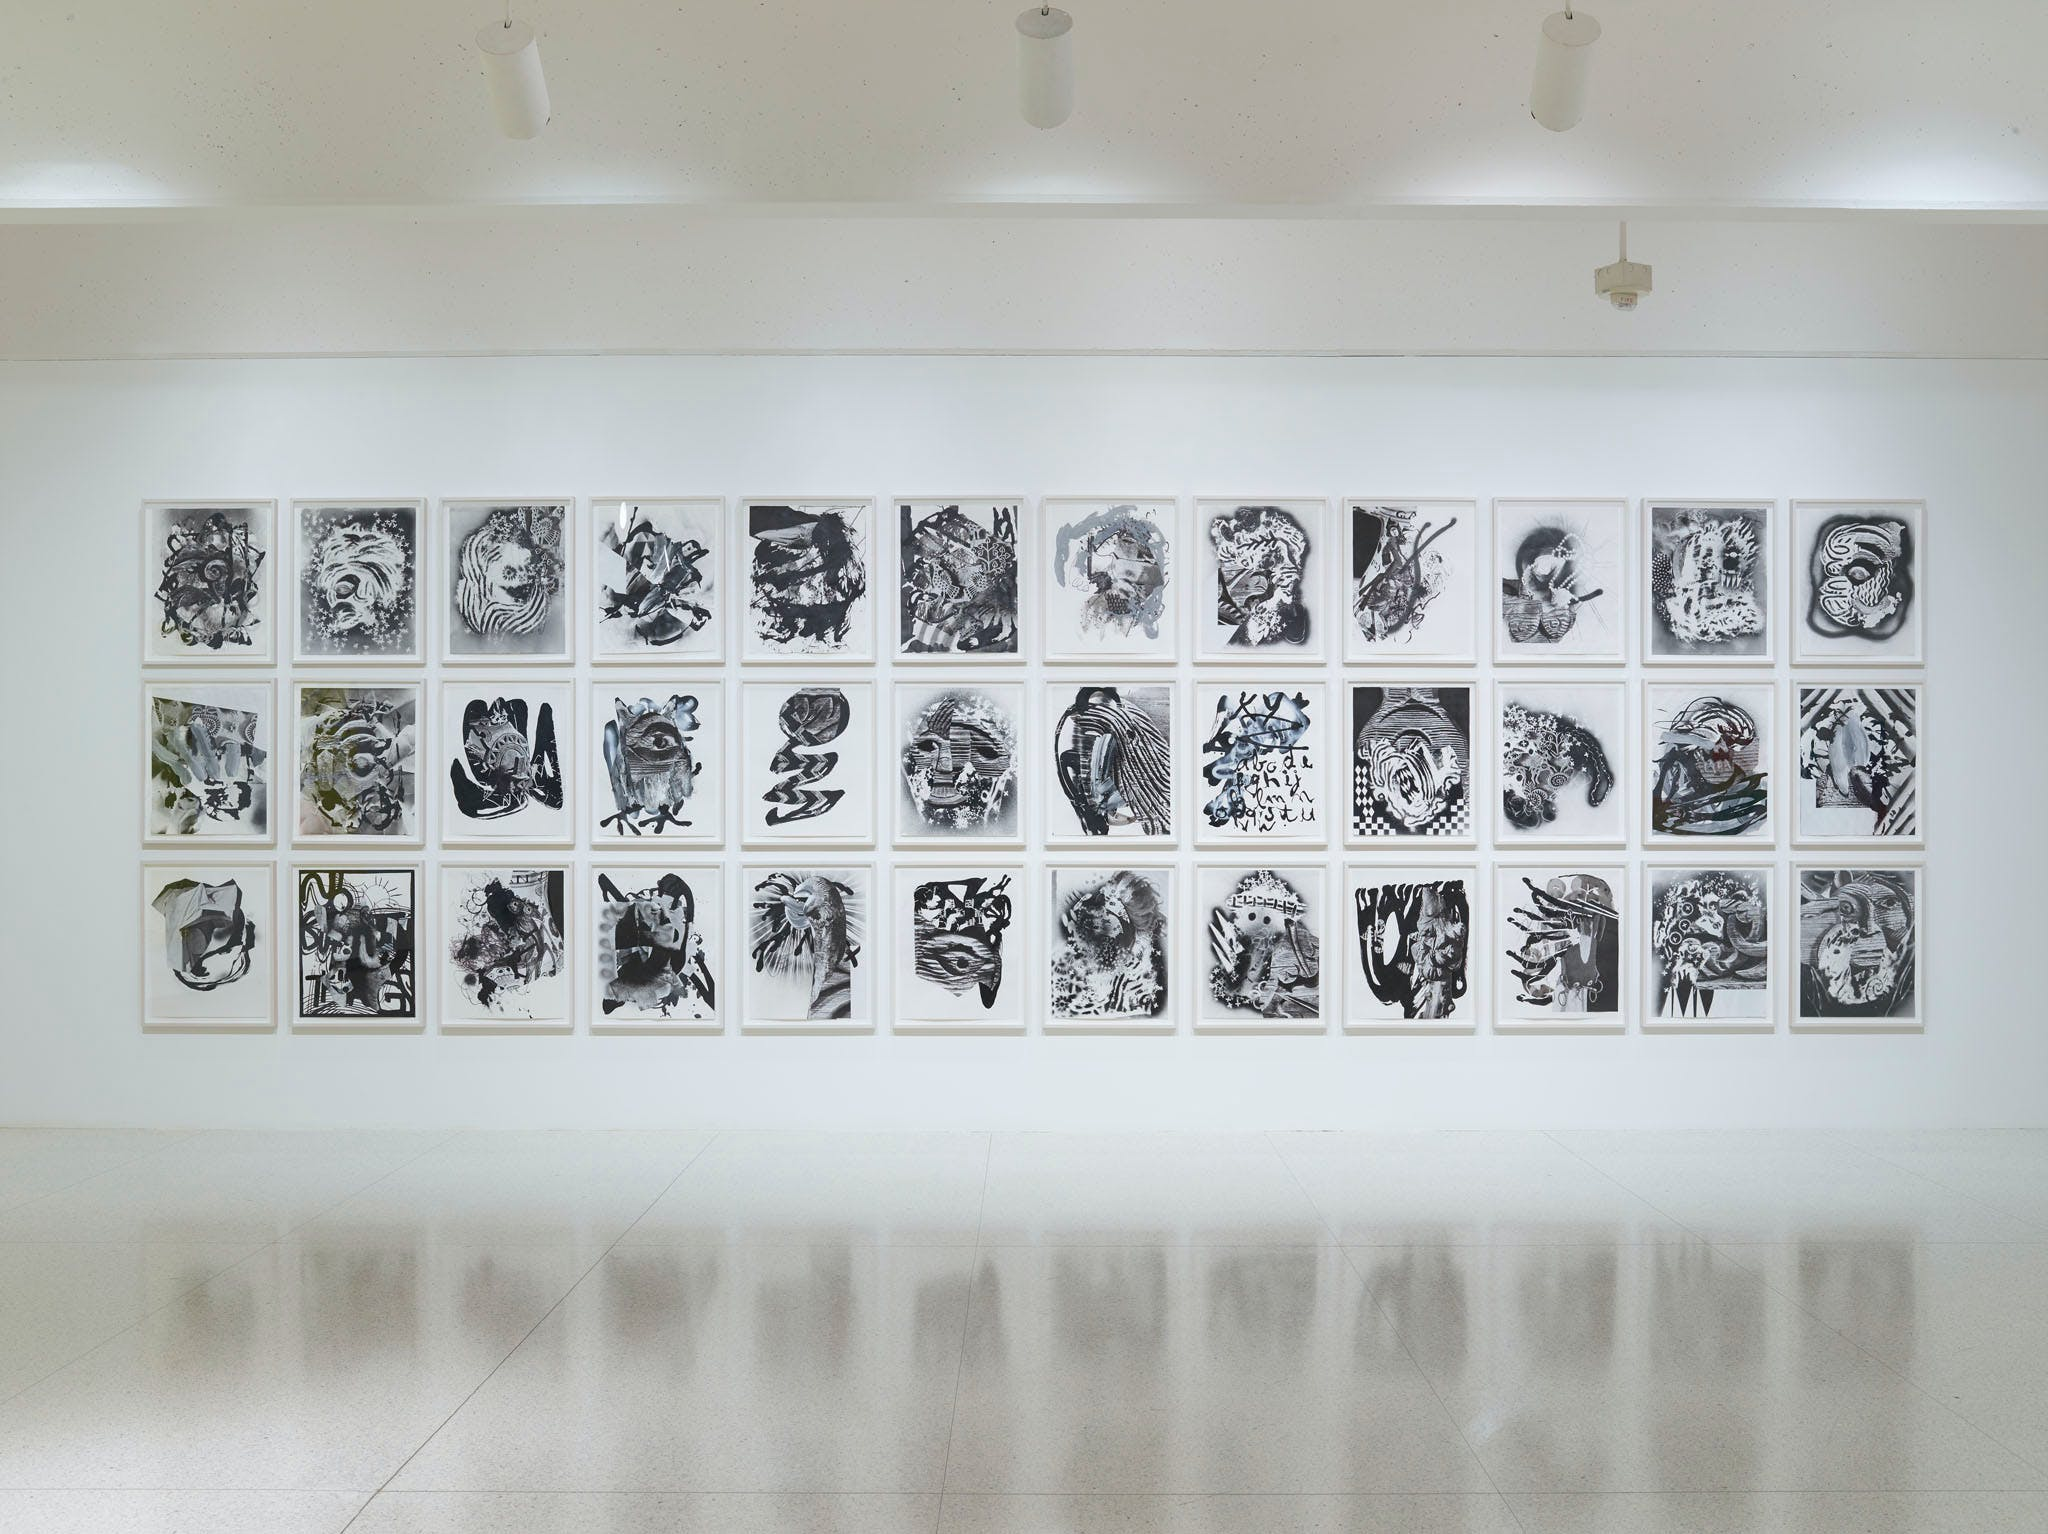 View of the exhibition Less Than One, 2016; Charline von Heyl, Folk Tales, 2014 (Photo: Gene Pittman, ©Walker Art Center)